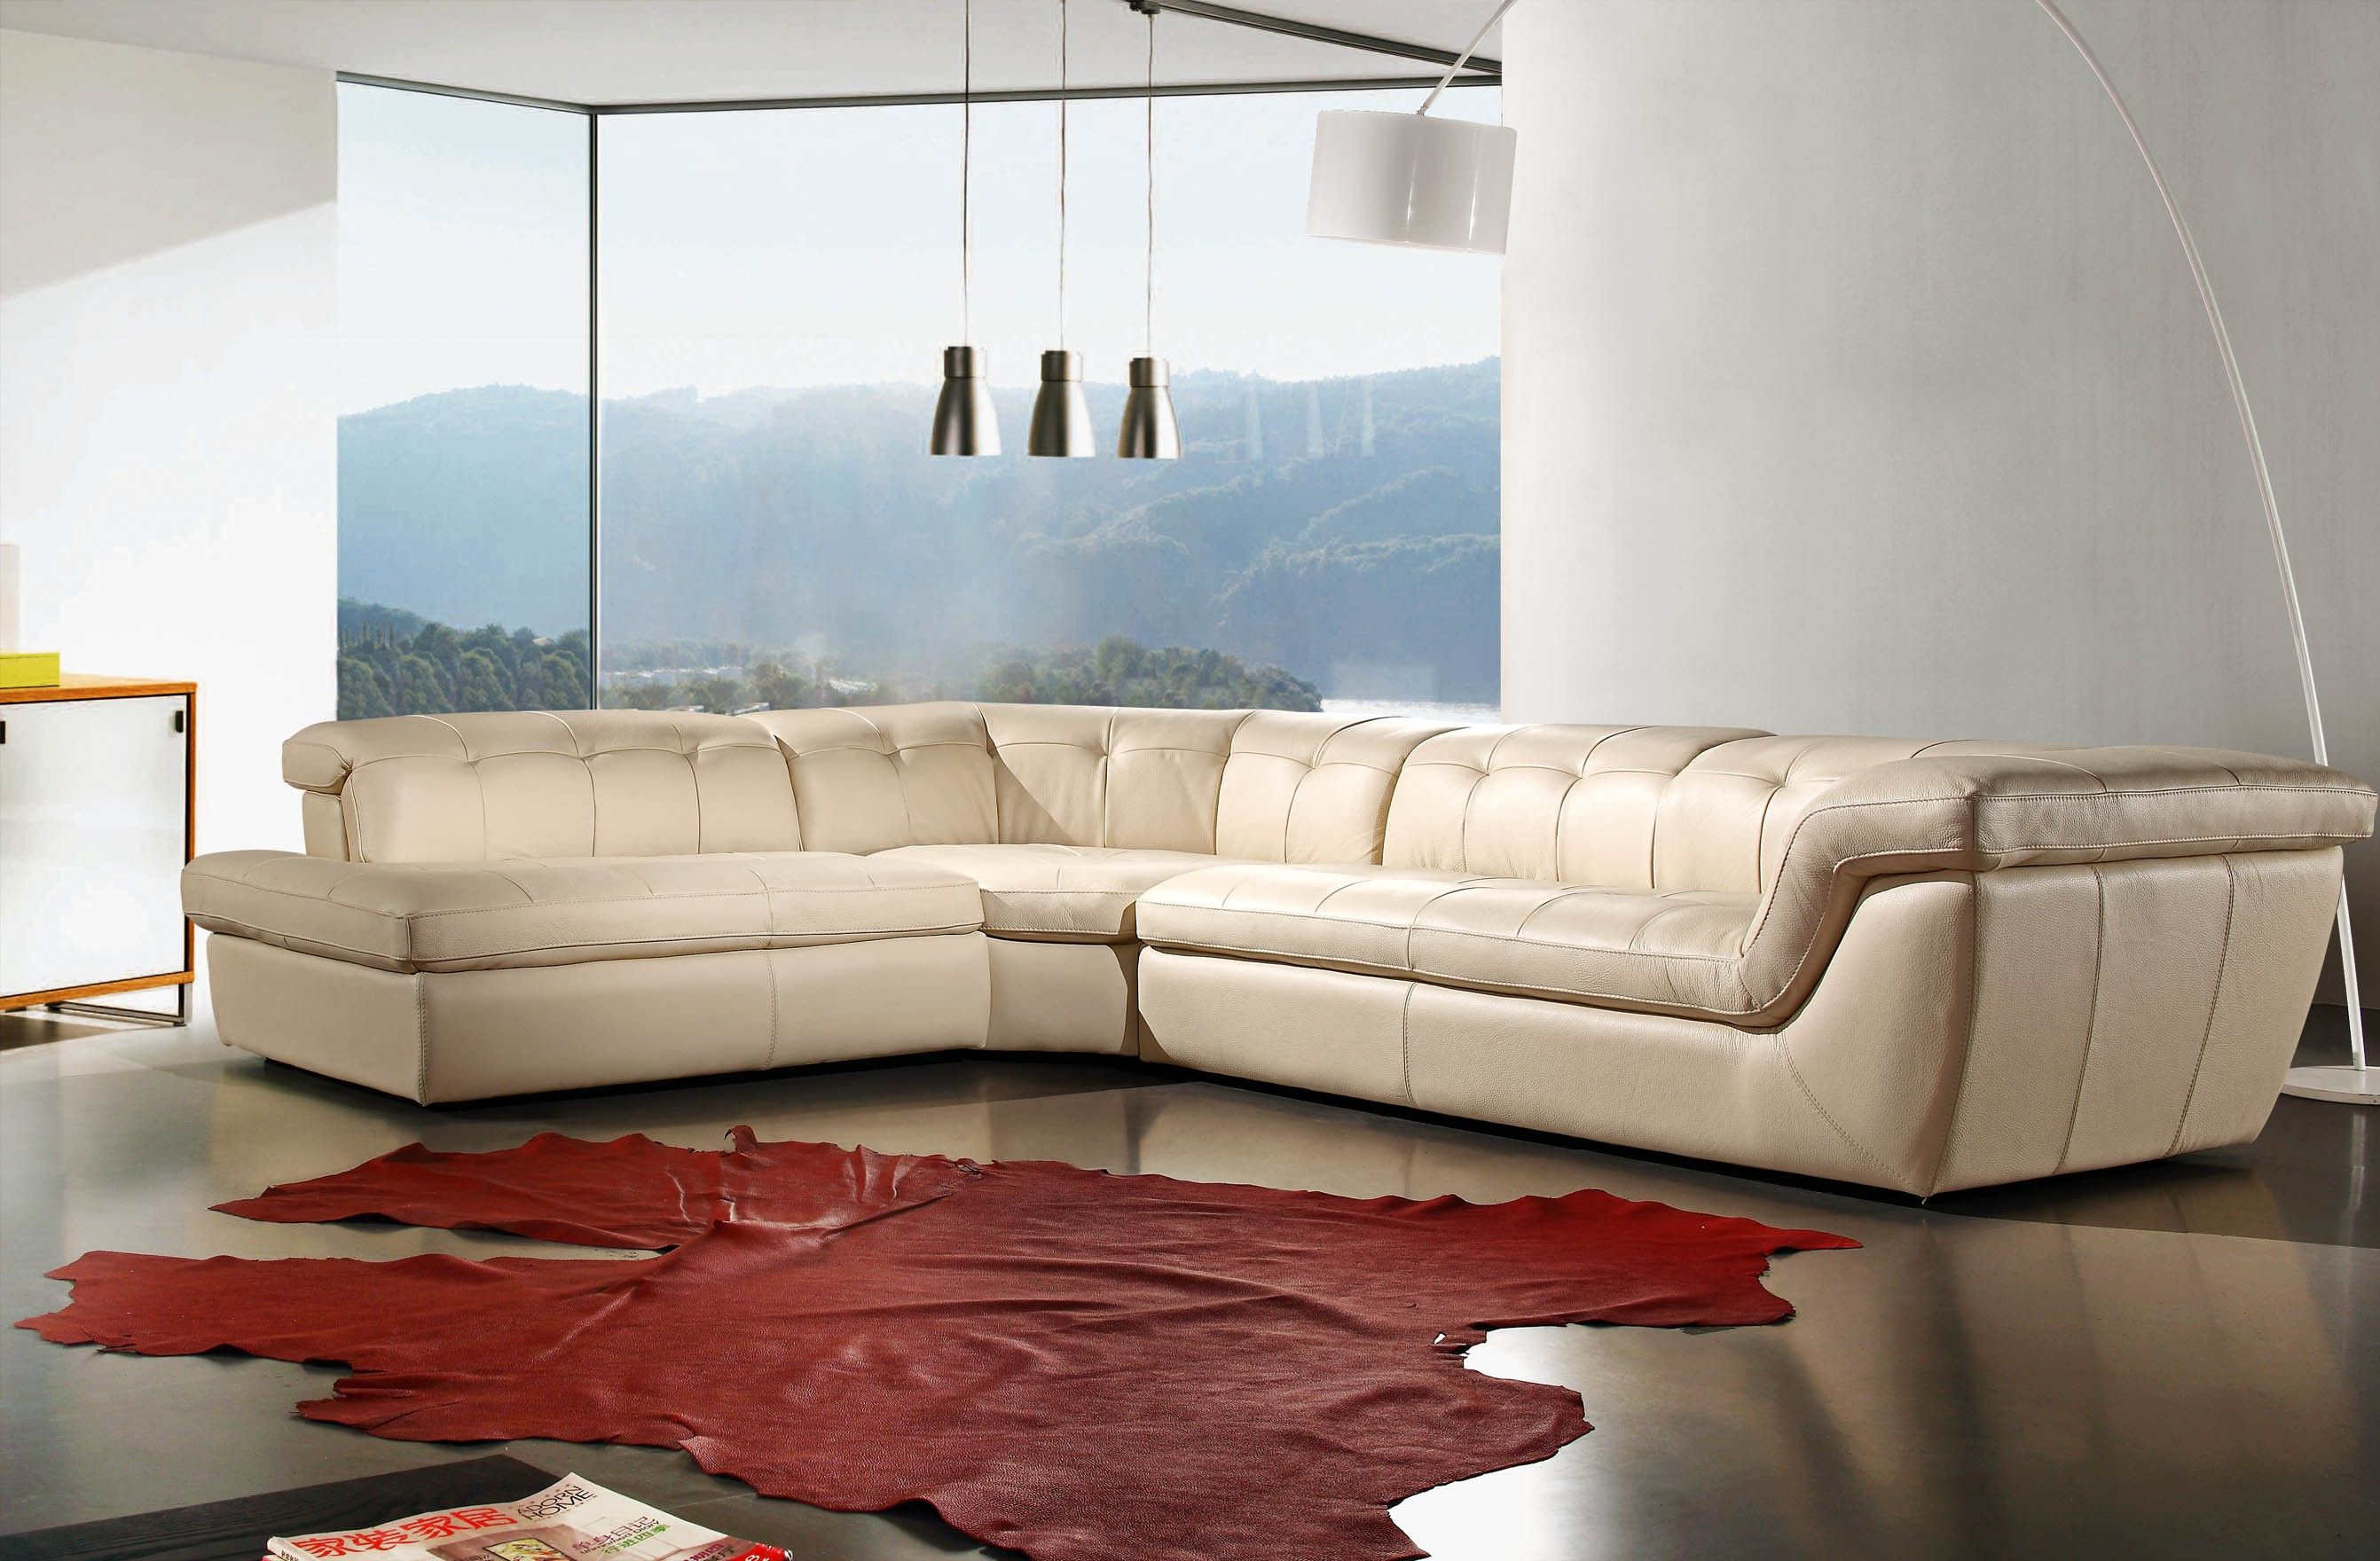 Living Room Design With Sectional Sofa Simple American Contemporary Sofa 10 Тыс Изображений Найдено В Яндекс Design Ideas